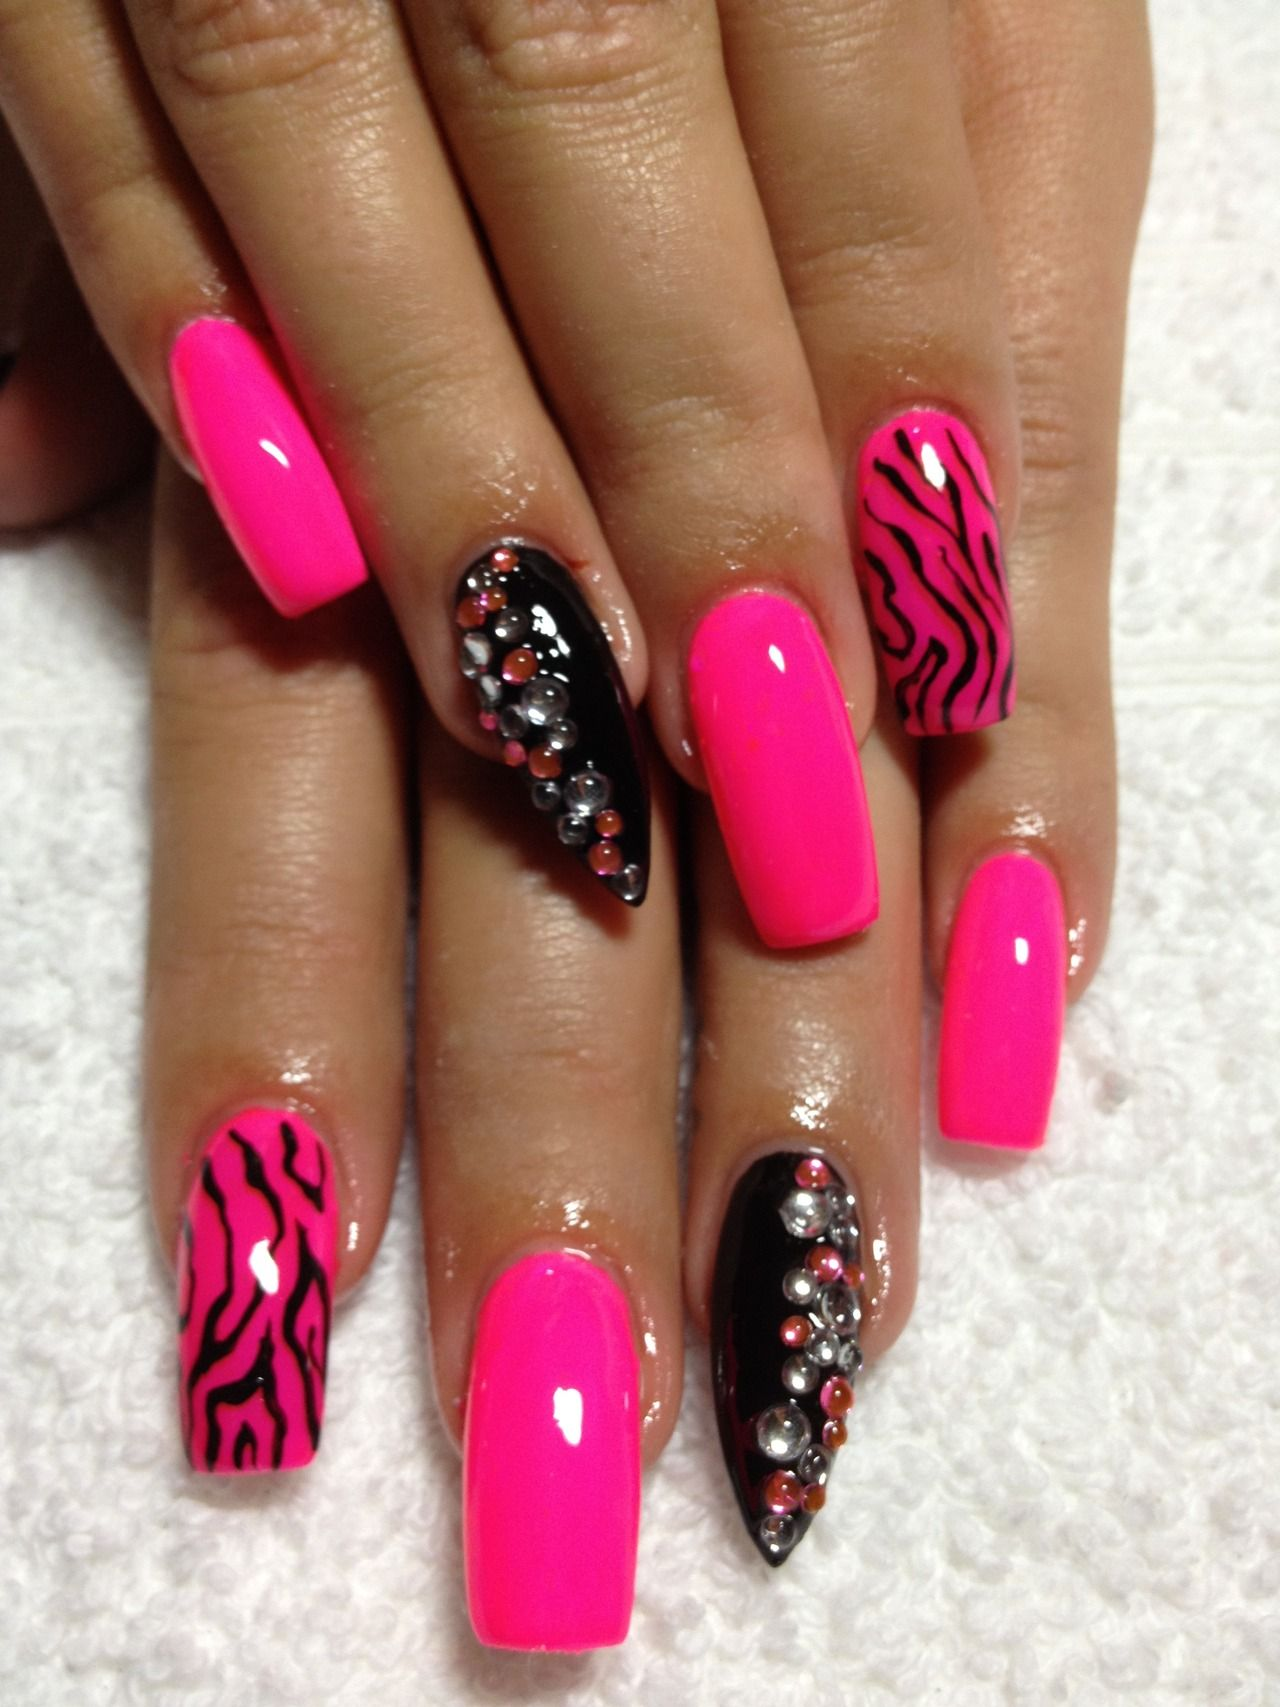 The nails are so nice but i would not have mine done like this ...